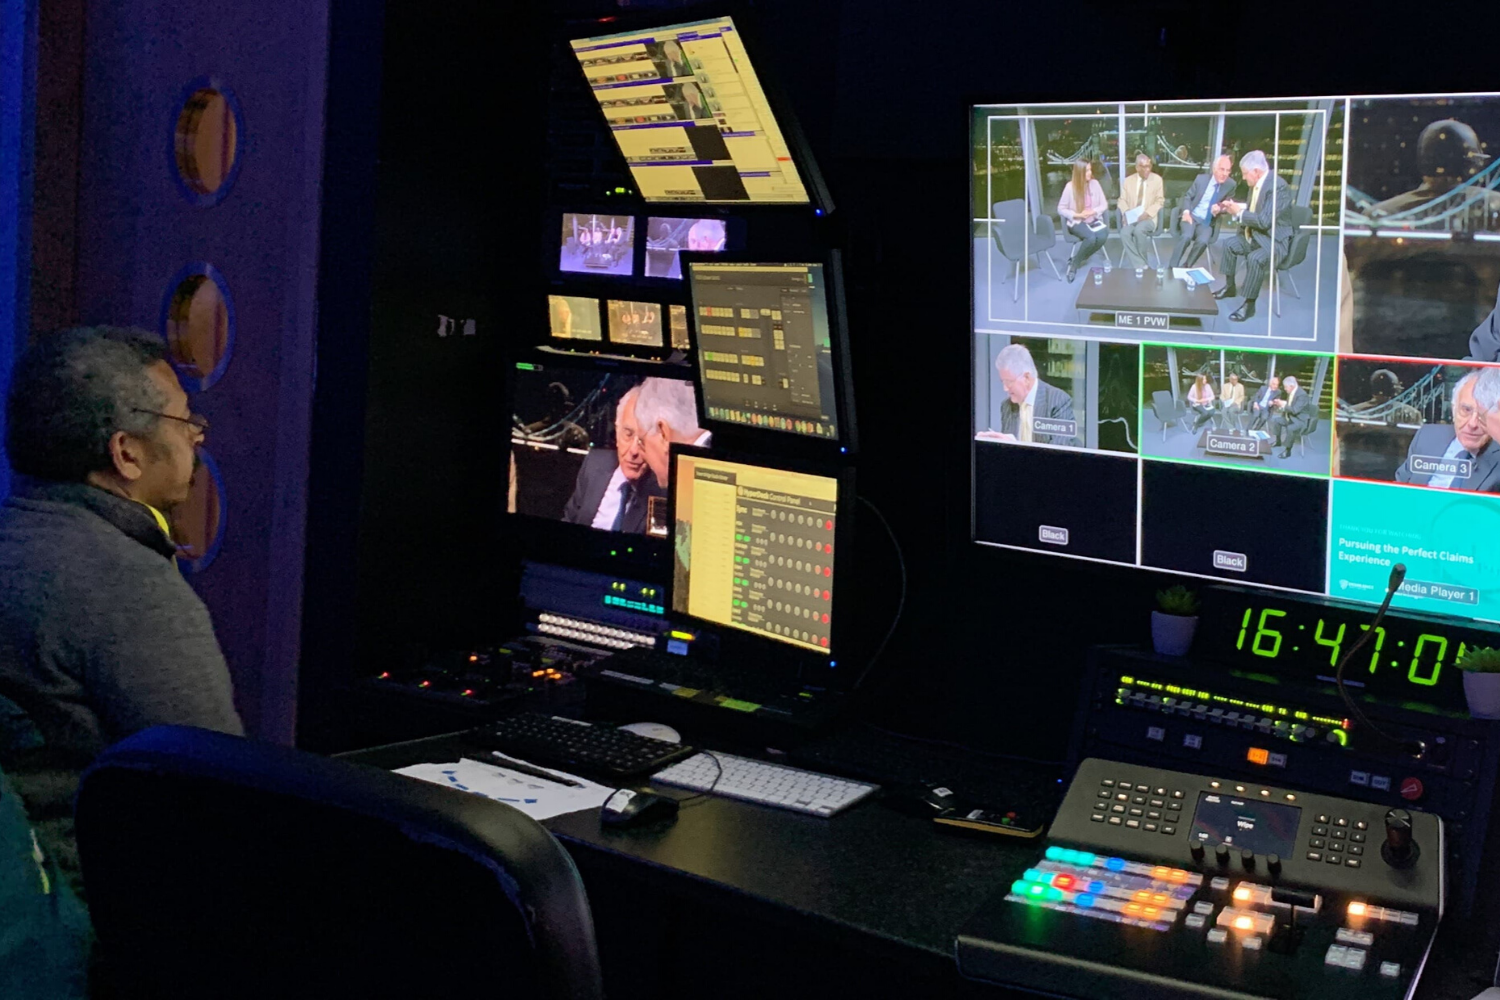 webcasting-behind-the-scenes-monitors